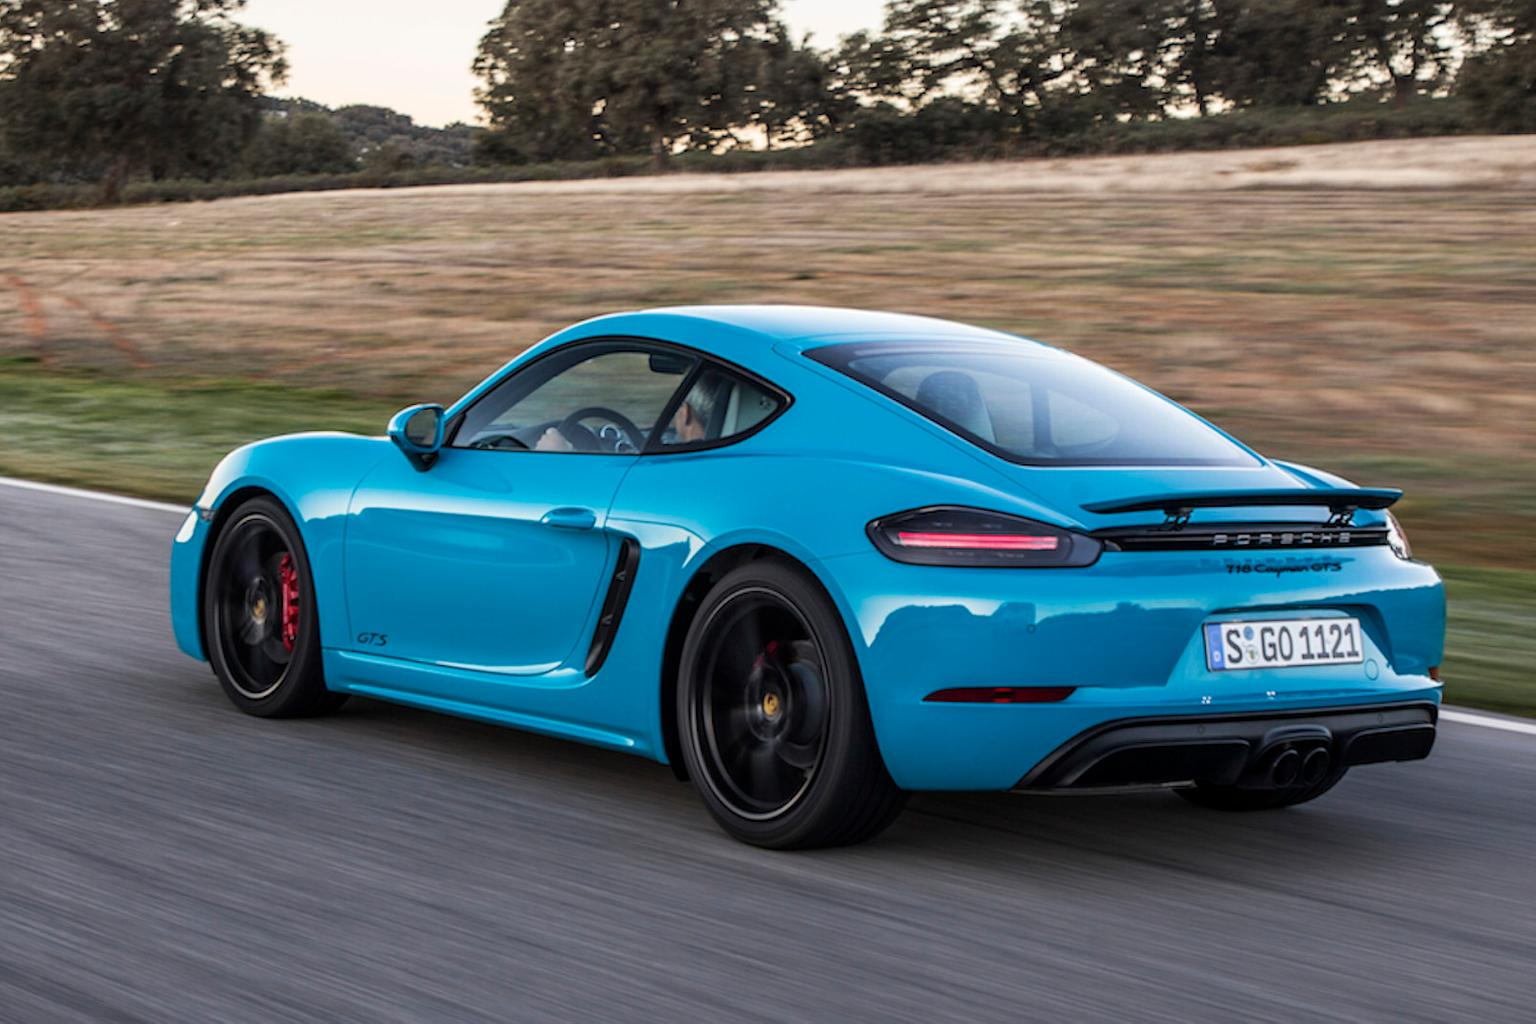 2018 Porsche 718 Cayman GTS review - price, specs and release dates